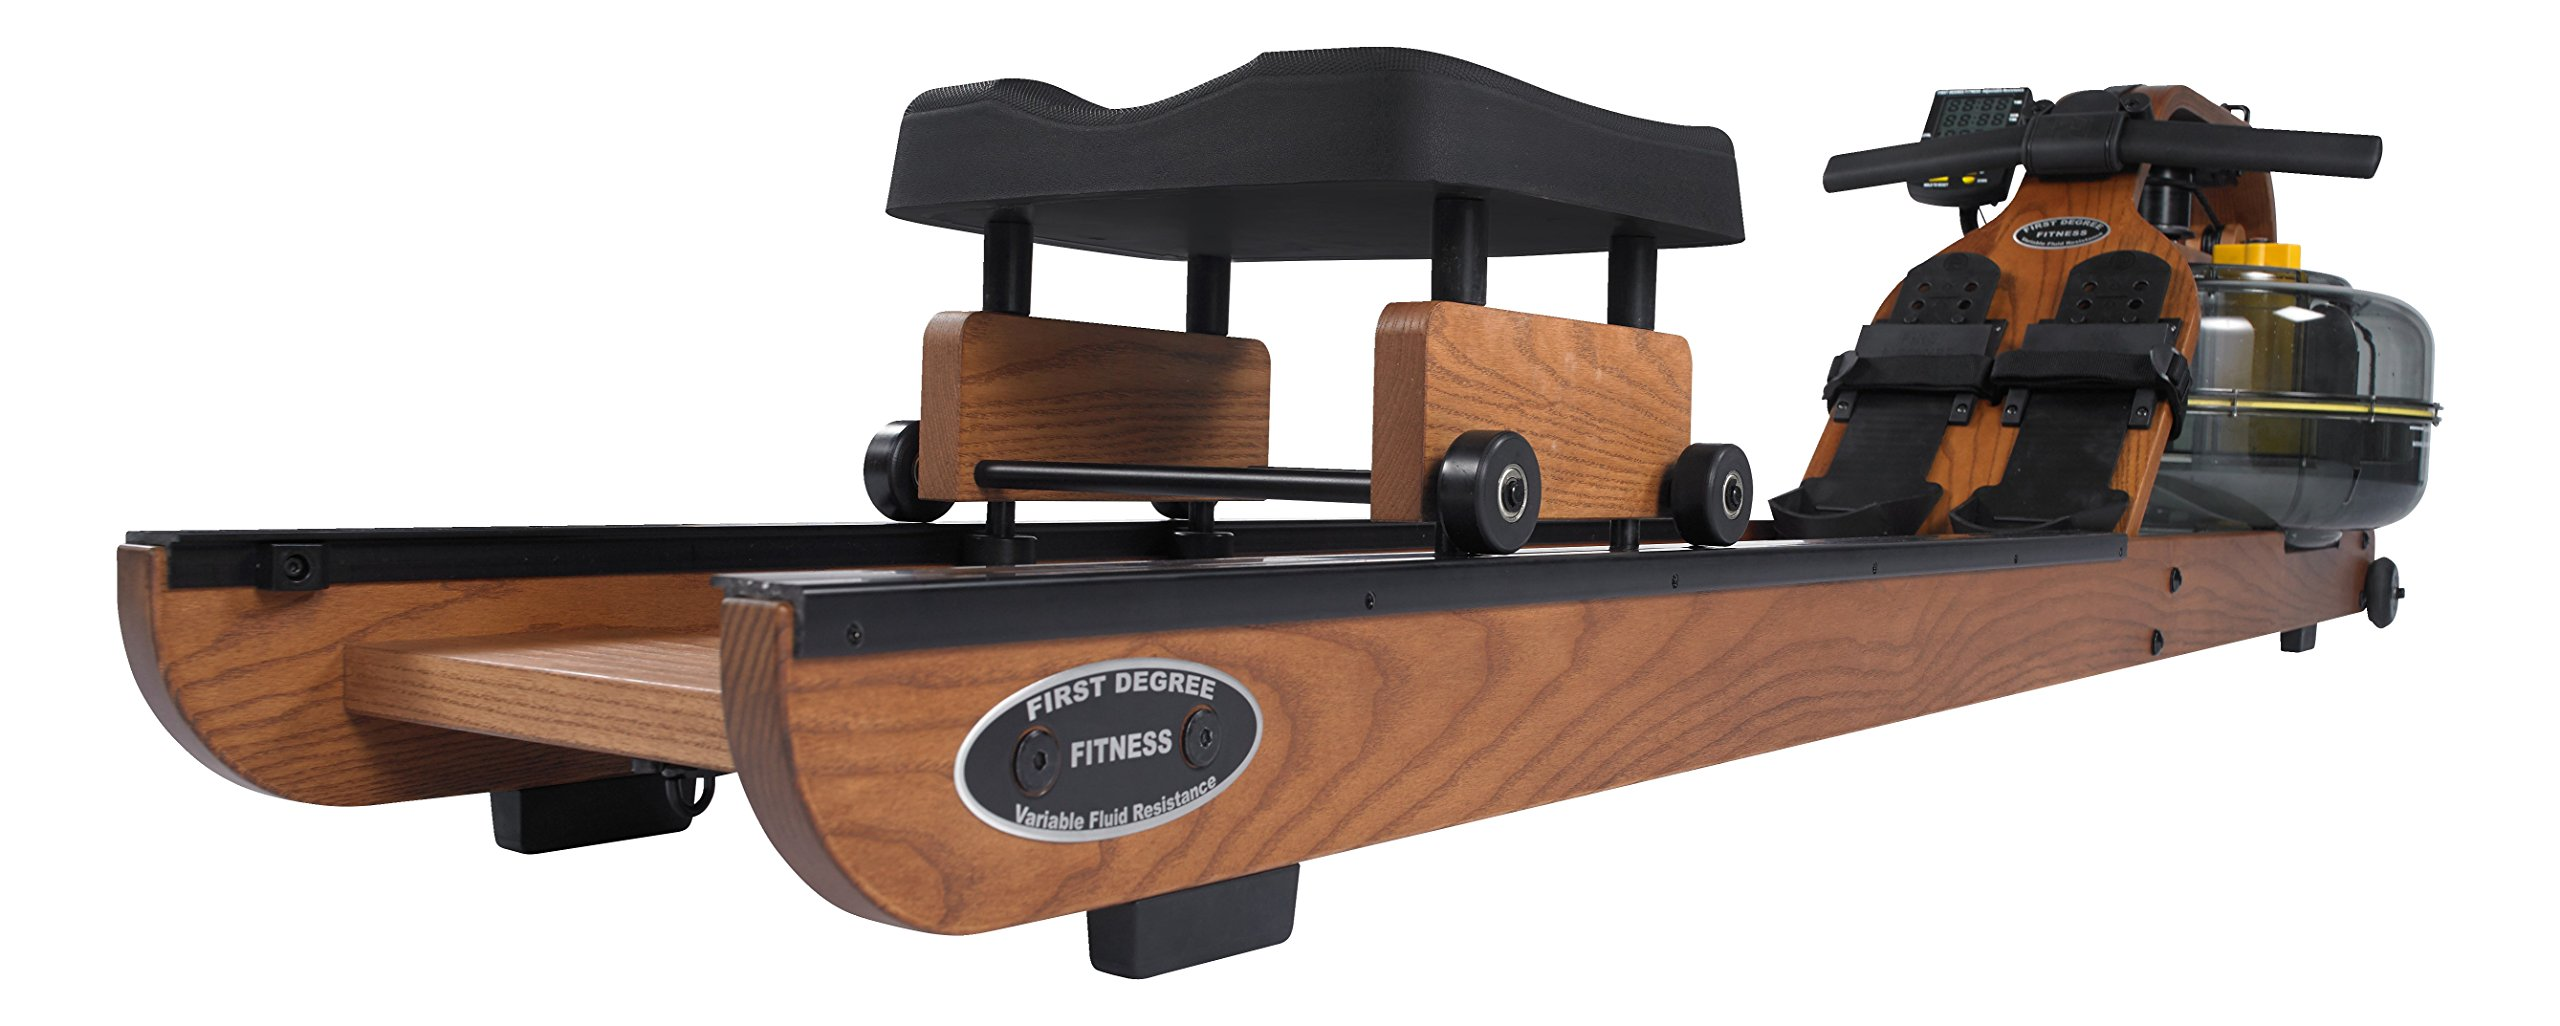 First Degree Fitness Indoor Rower, Viking 3 AR - American Ash - Horizontal Series by First Degree Fitness (Image #2)